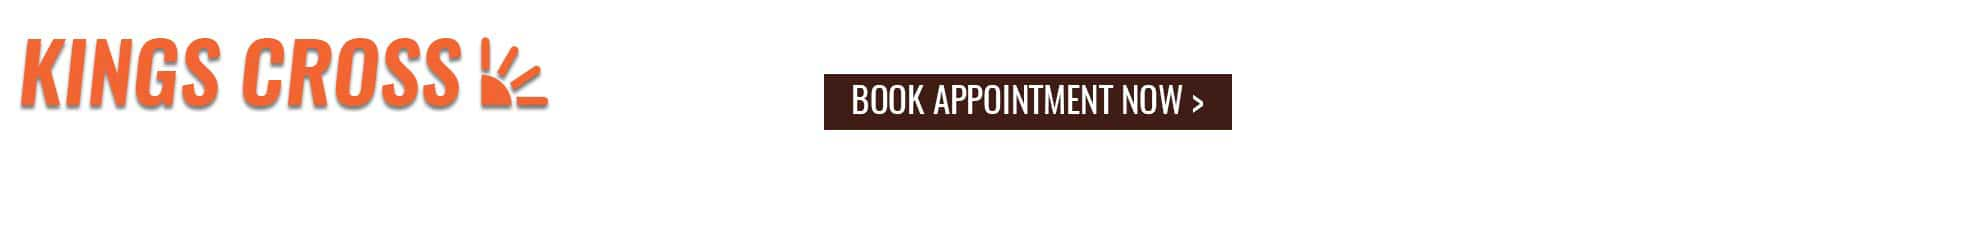 Kings Cross Tanning Shop Book Appointment